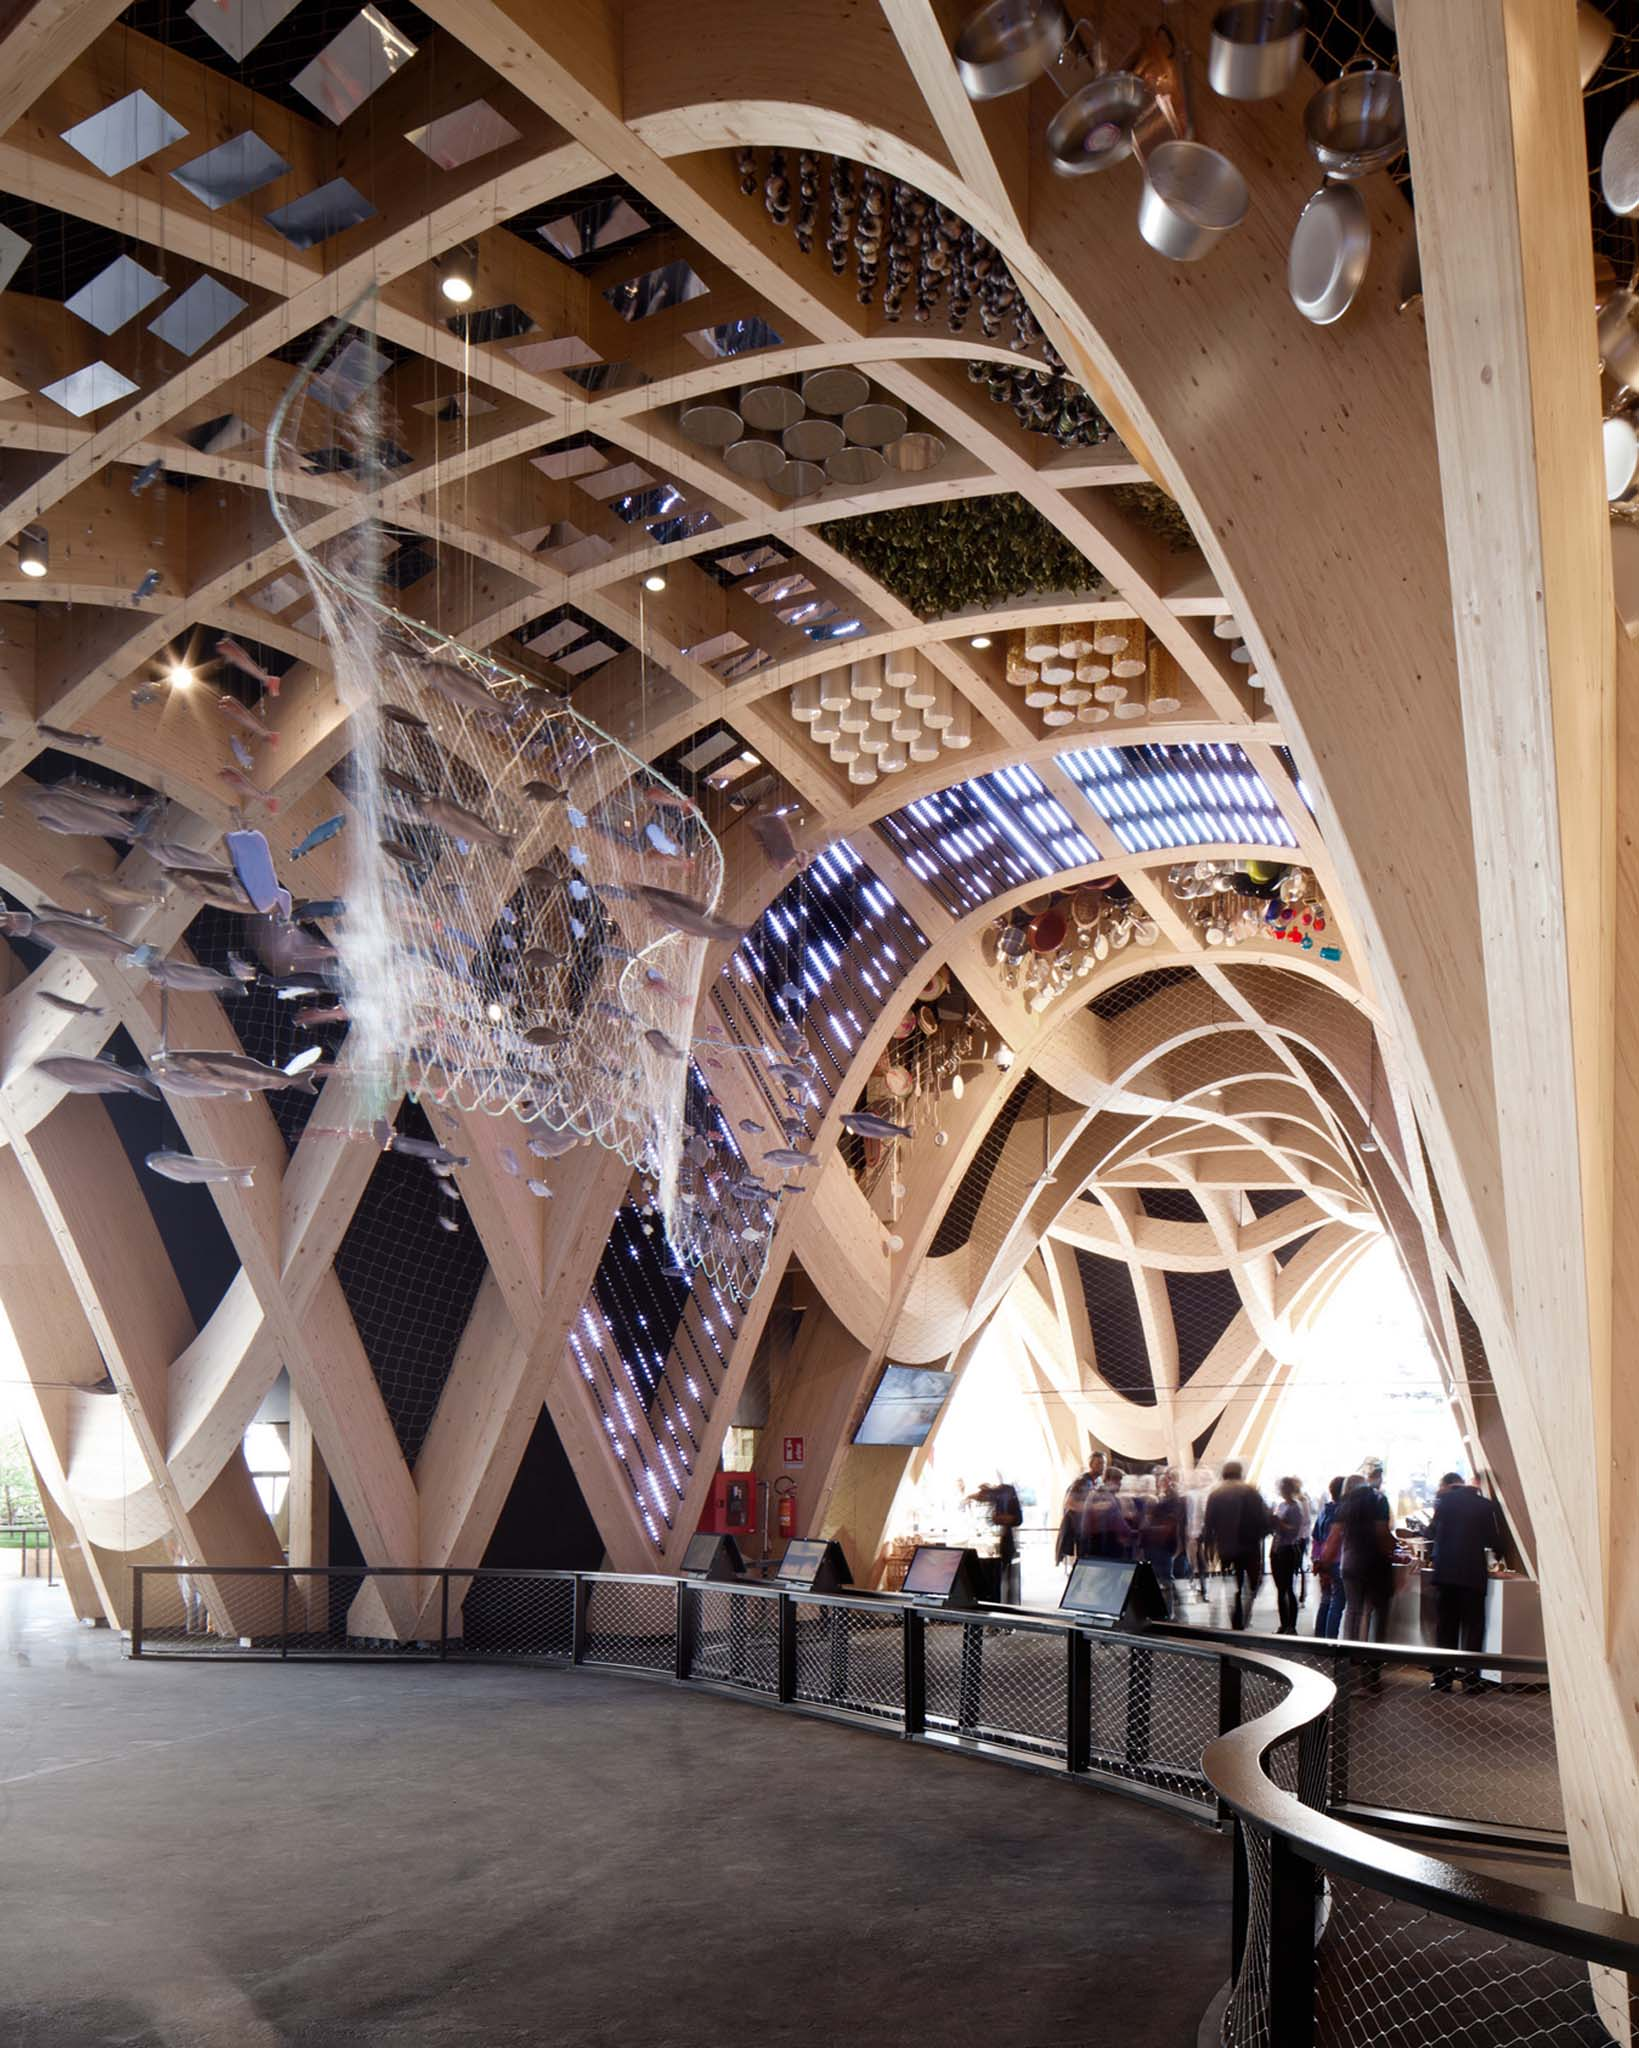 Pavillon france de l 39 expo milan 2015 xtu construit un for Architecture organique exemple